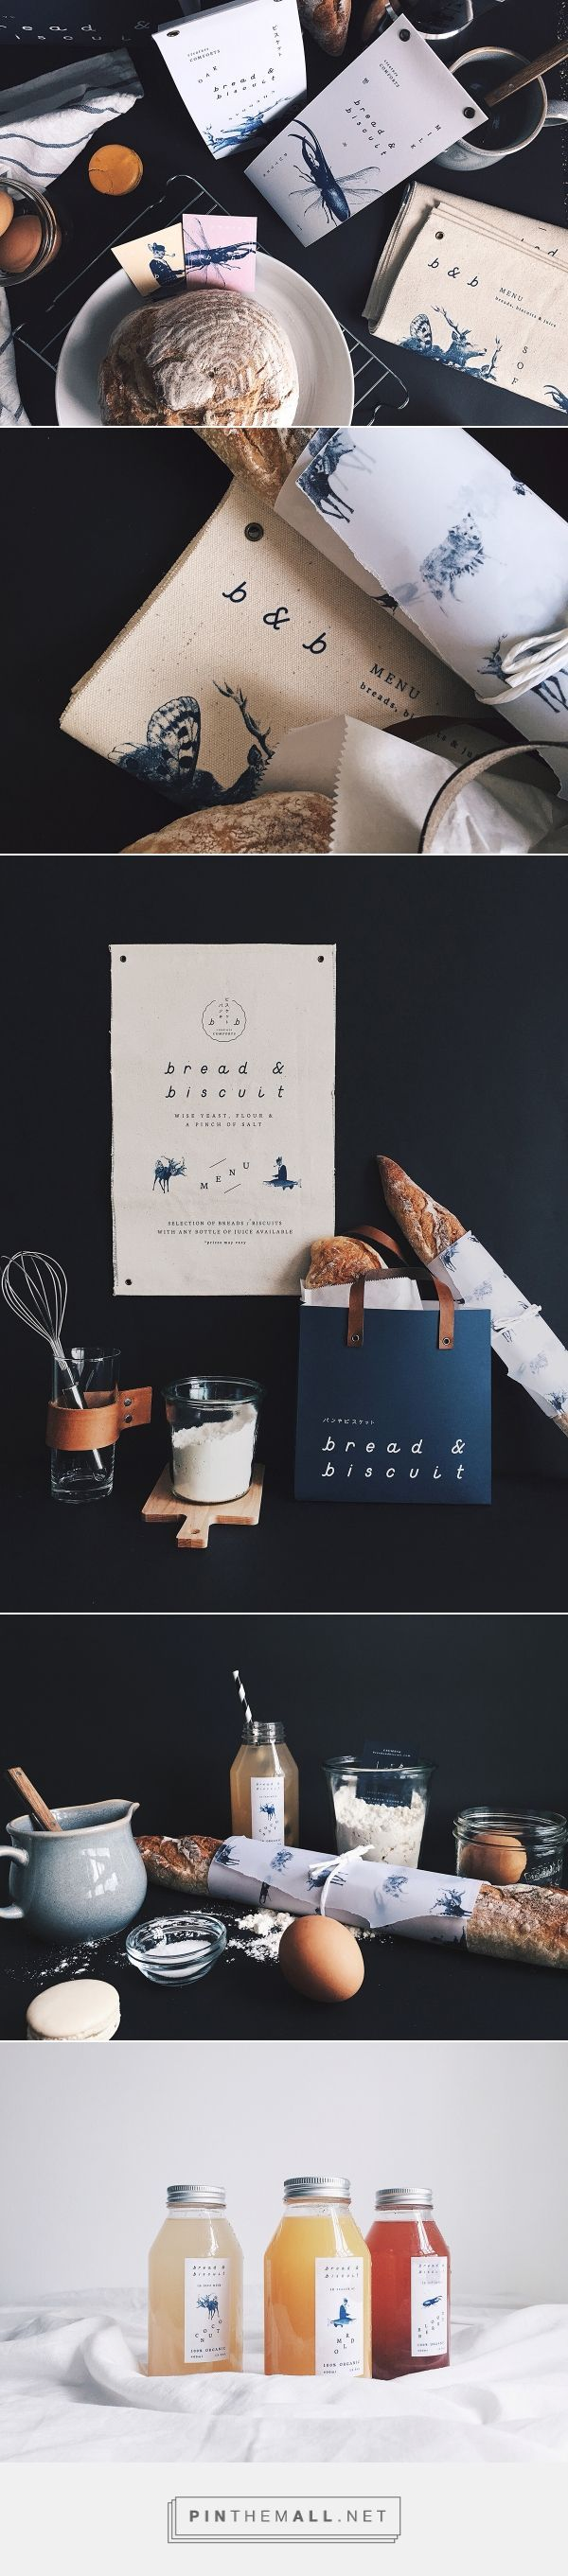 B&B Bread and Biscuit on Behance by Oddds Singapore, Singapore curated by Packaging Diva PD. Collaterals were extended to business cards, biscuit packaging sealed with antique brass eyelets, a paper carrier bag with leather handles to juice bottles.